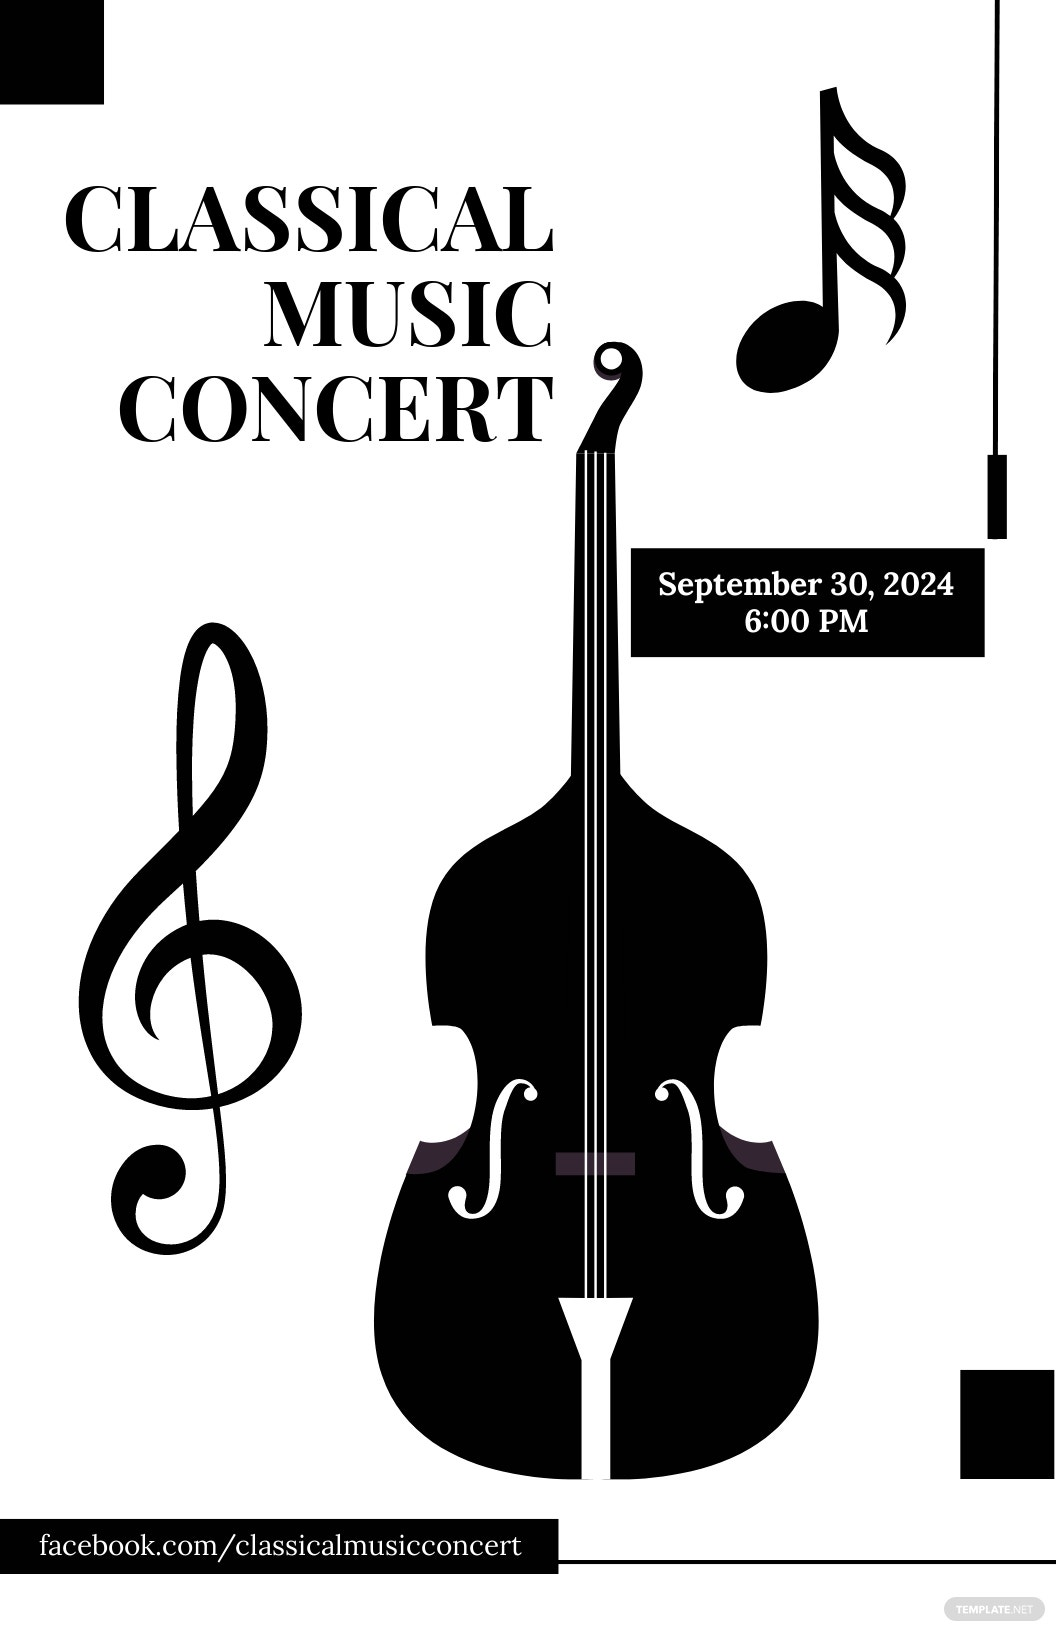 Free Classical Music Concert Poster Template.jpe